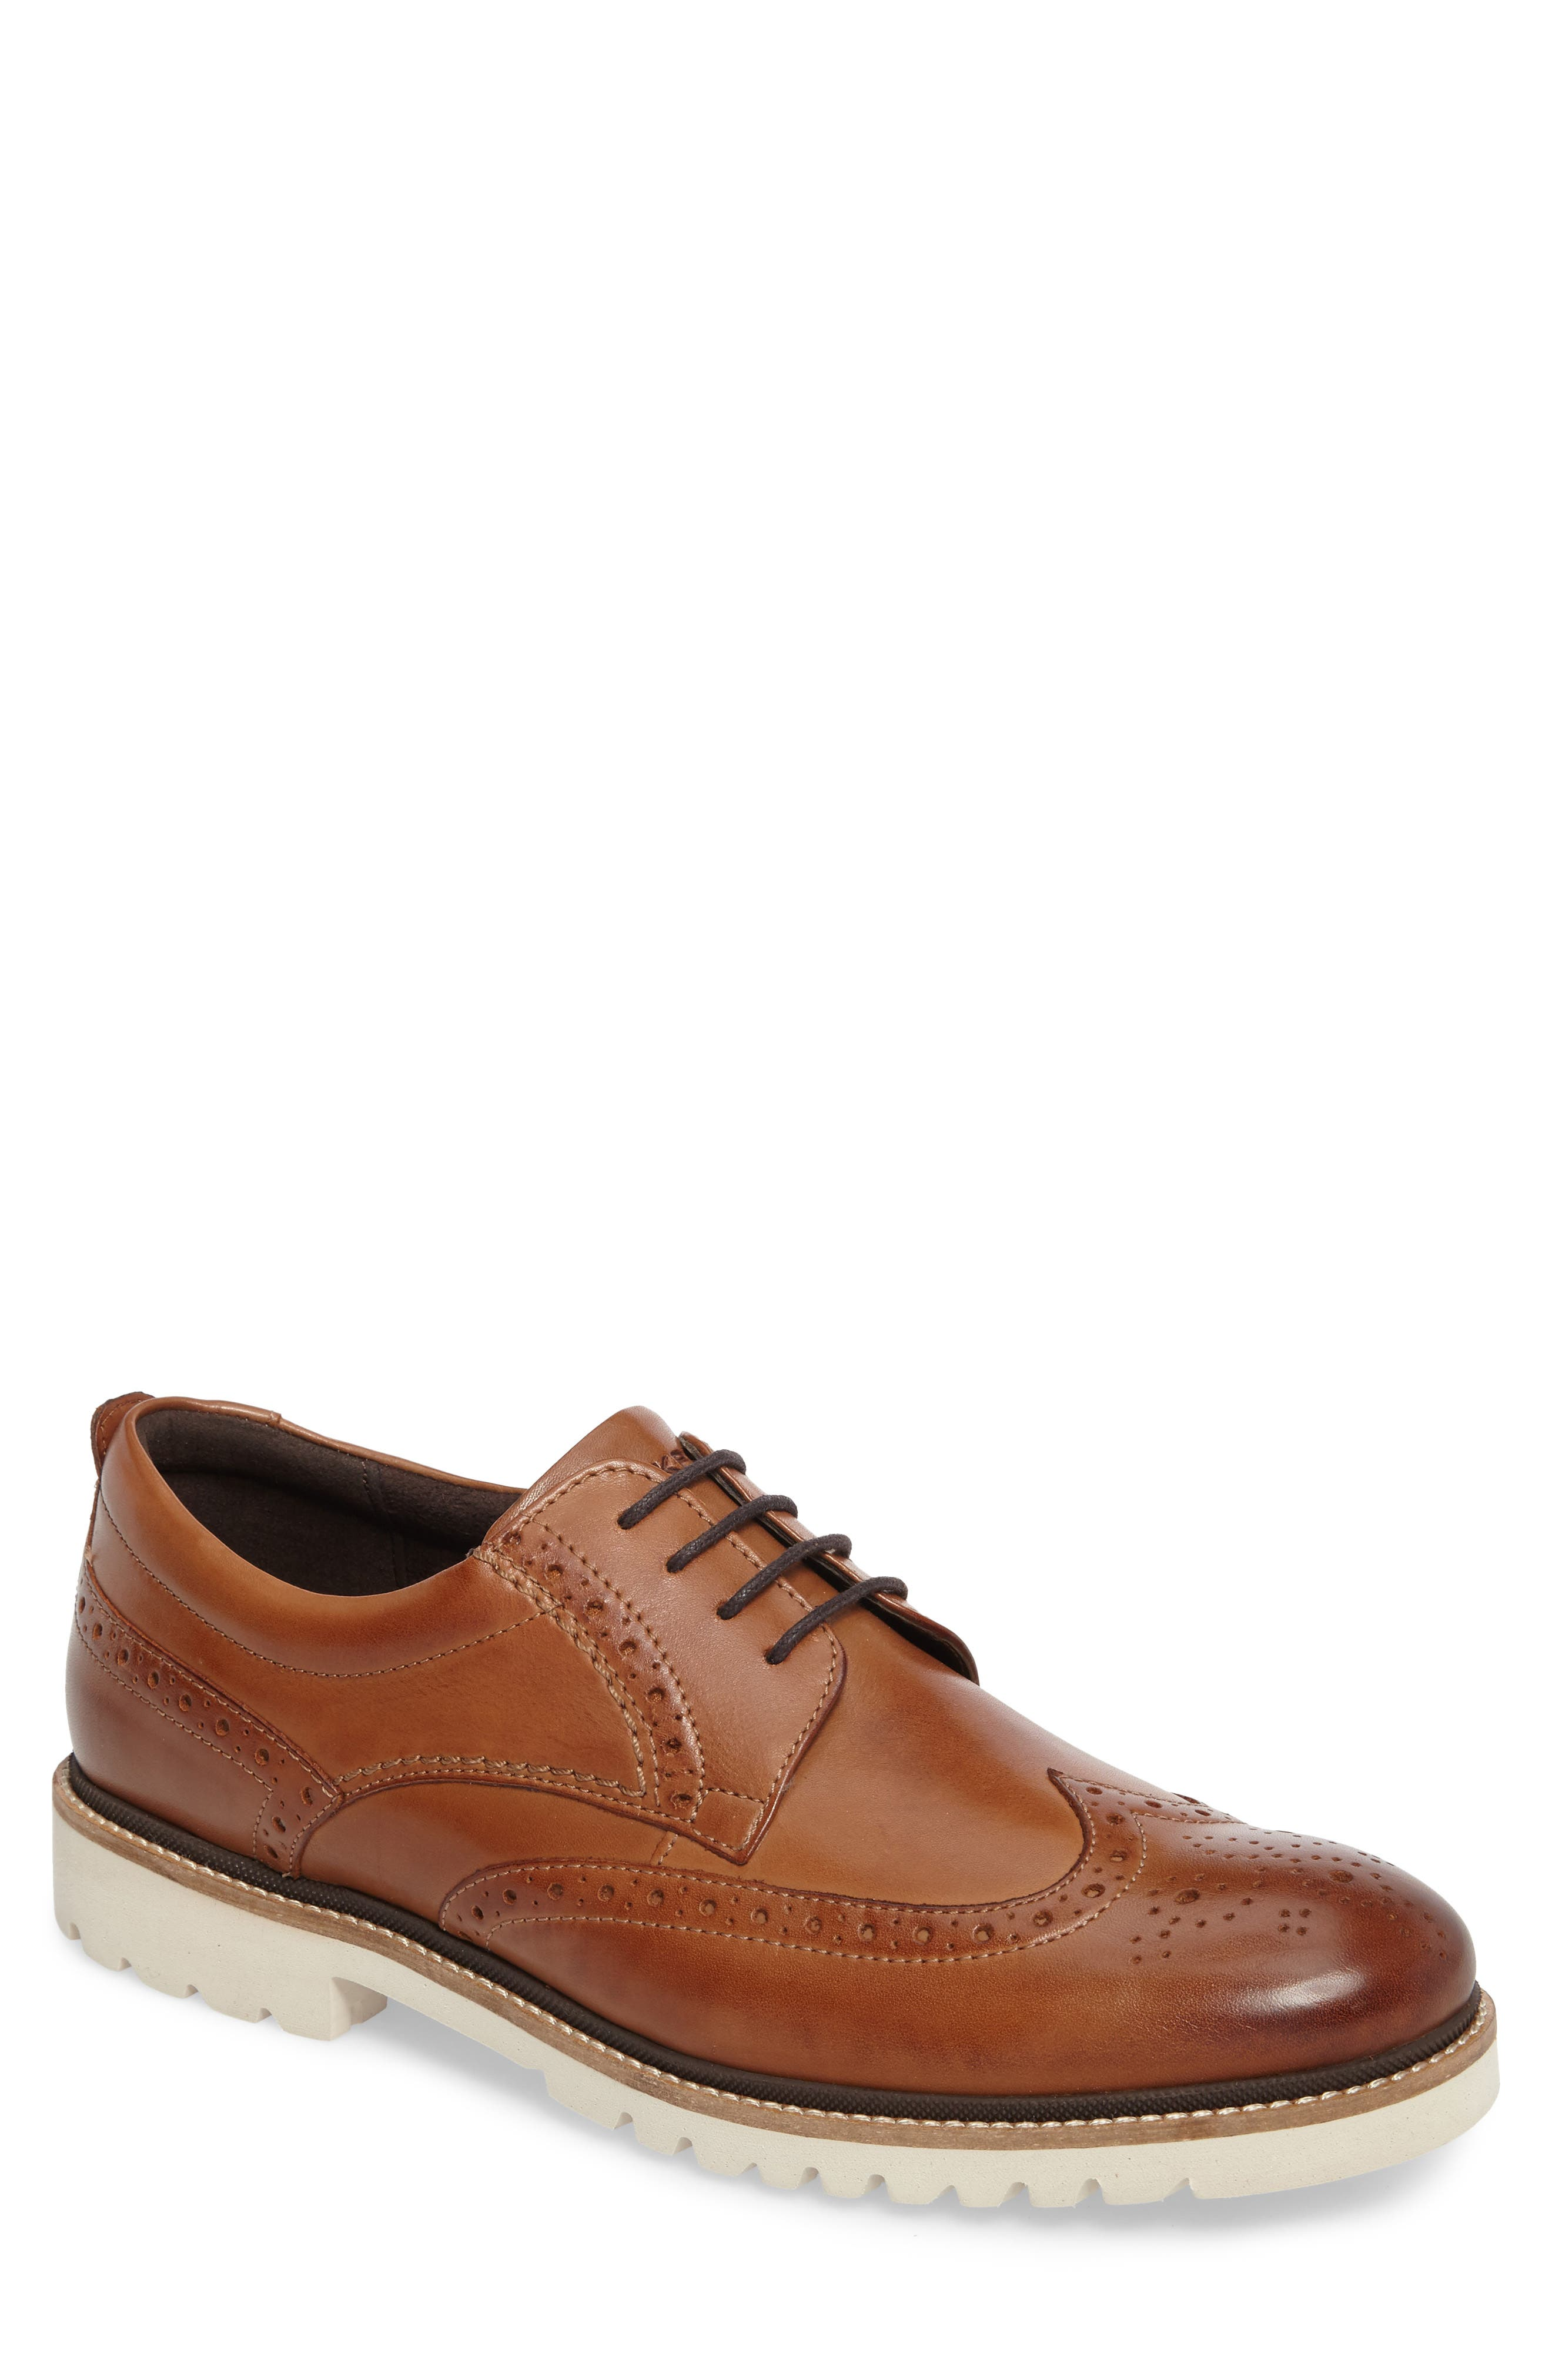 Marshall Wingtip,                         Main,                         color, Cognac Leather